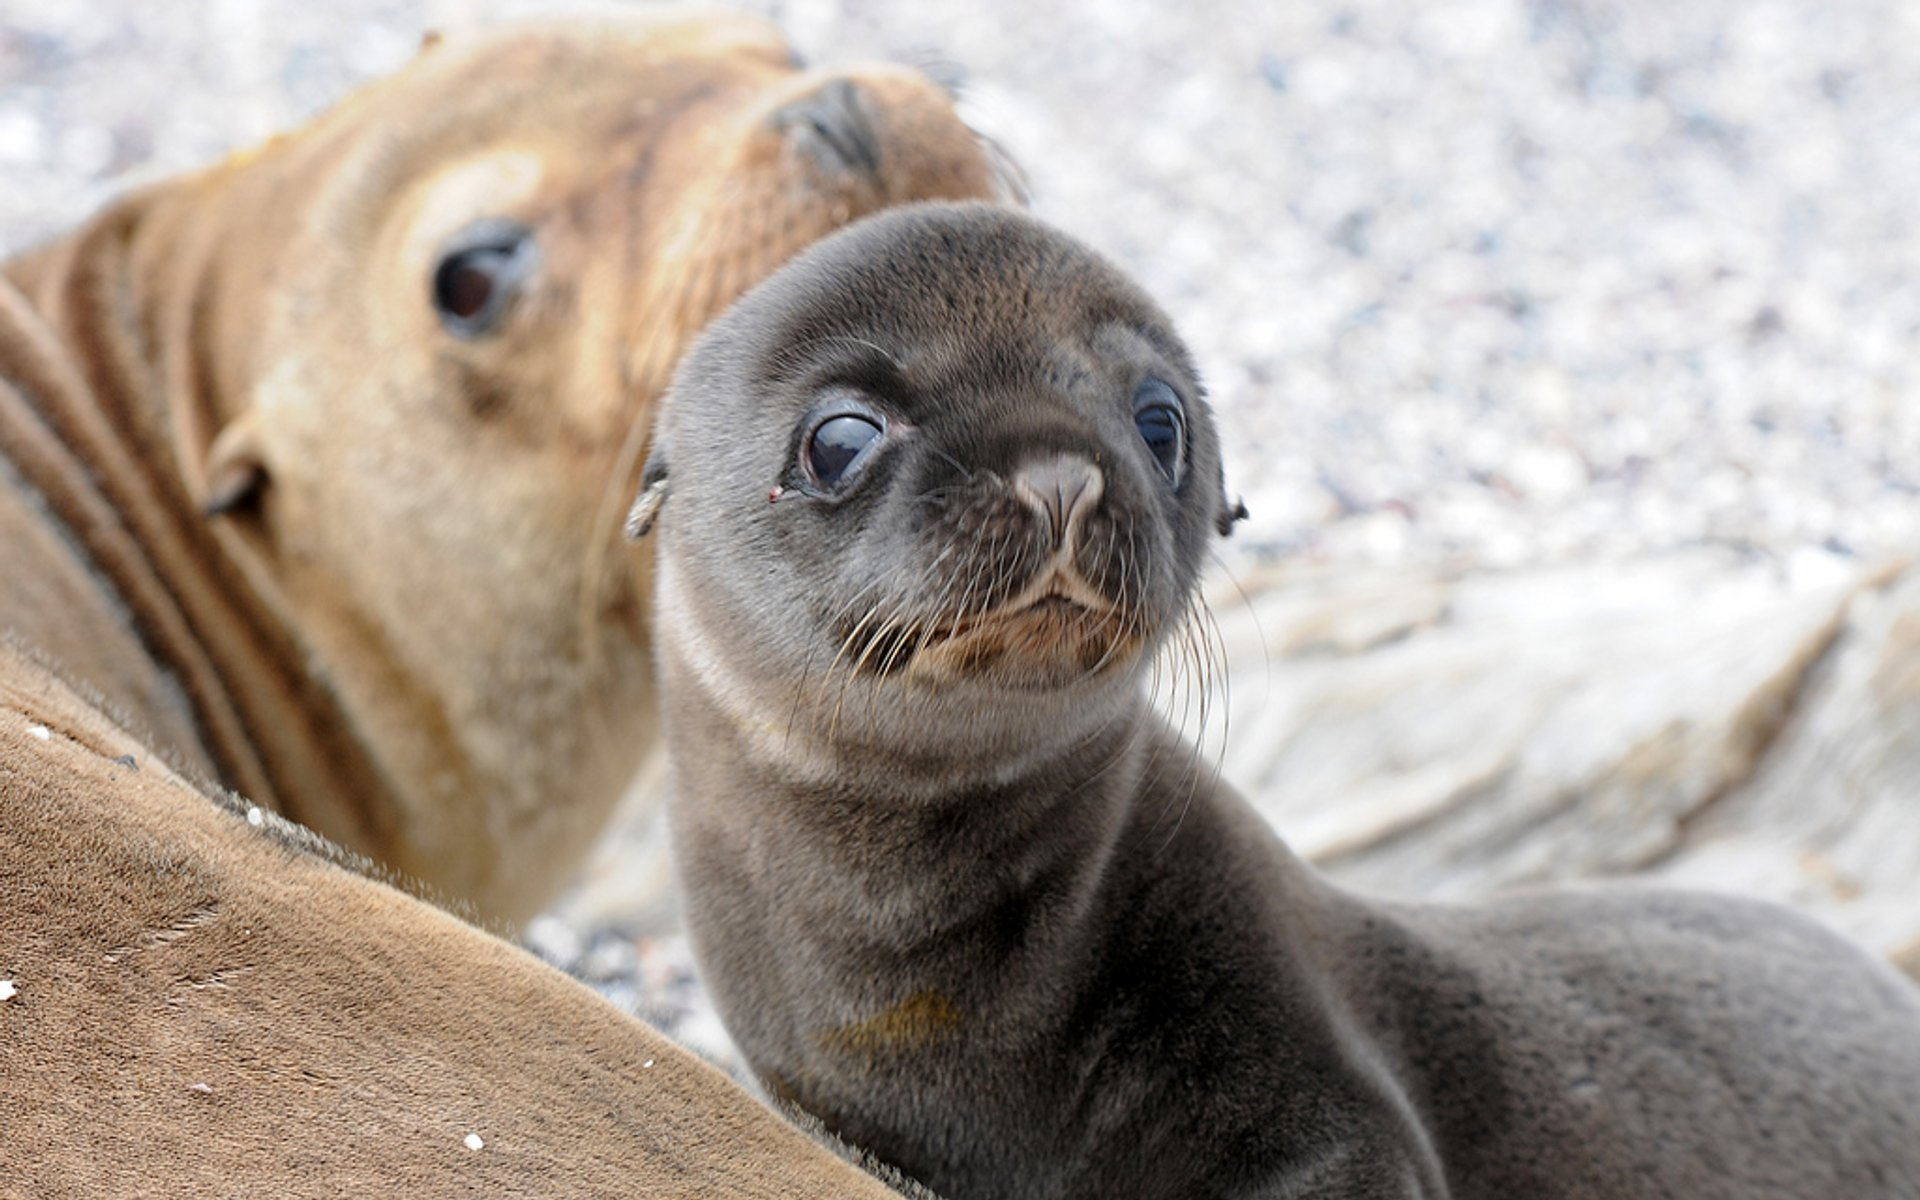 Baby Sea Lions in Galapagos Islands 2019 - Best Time